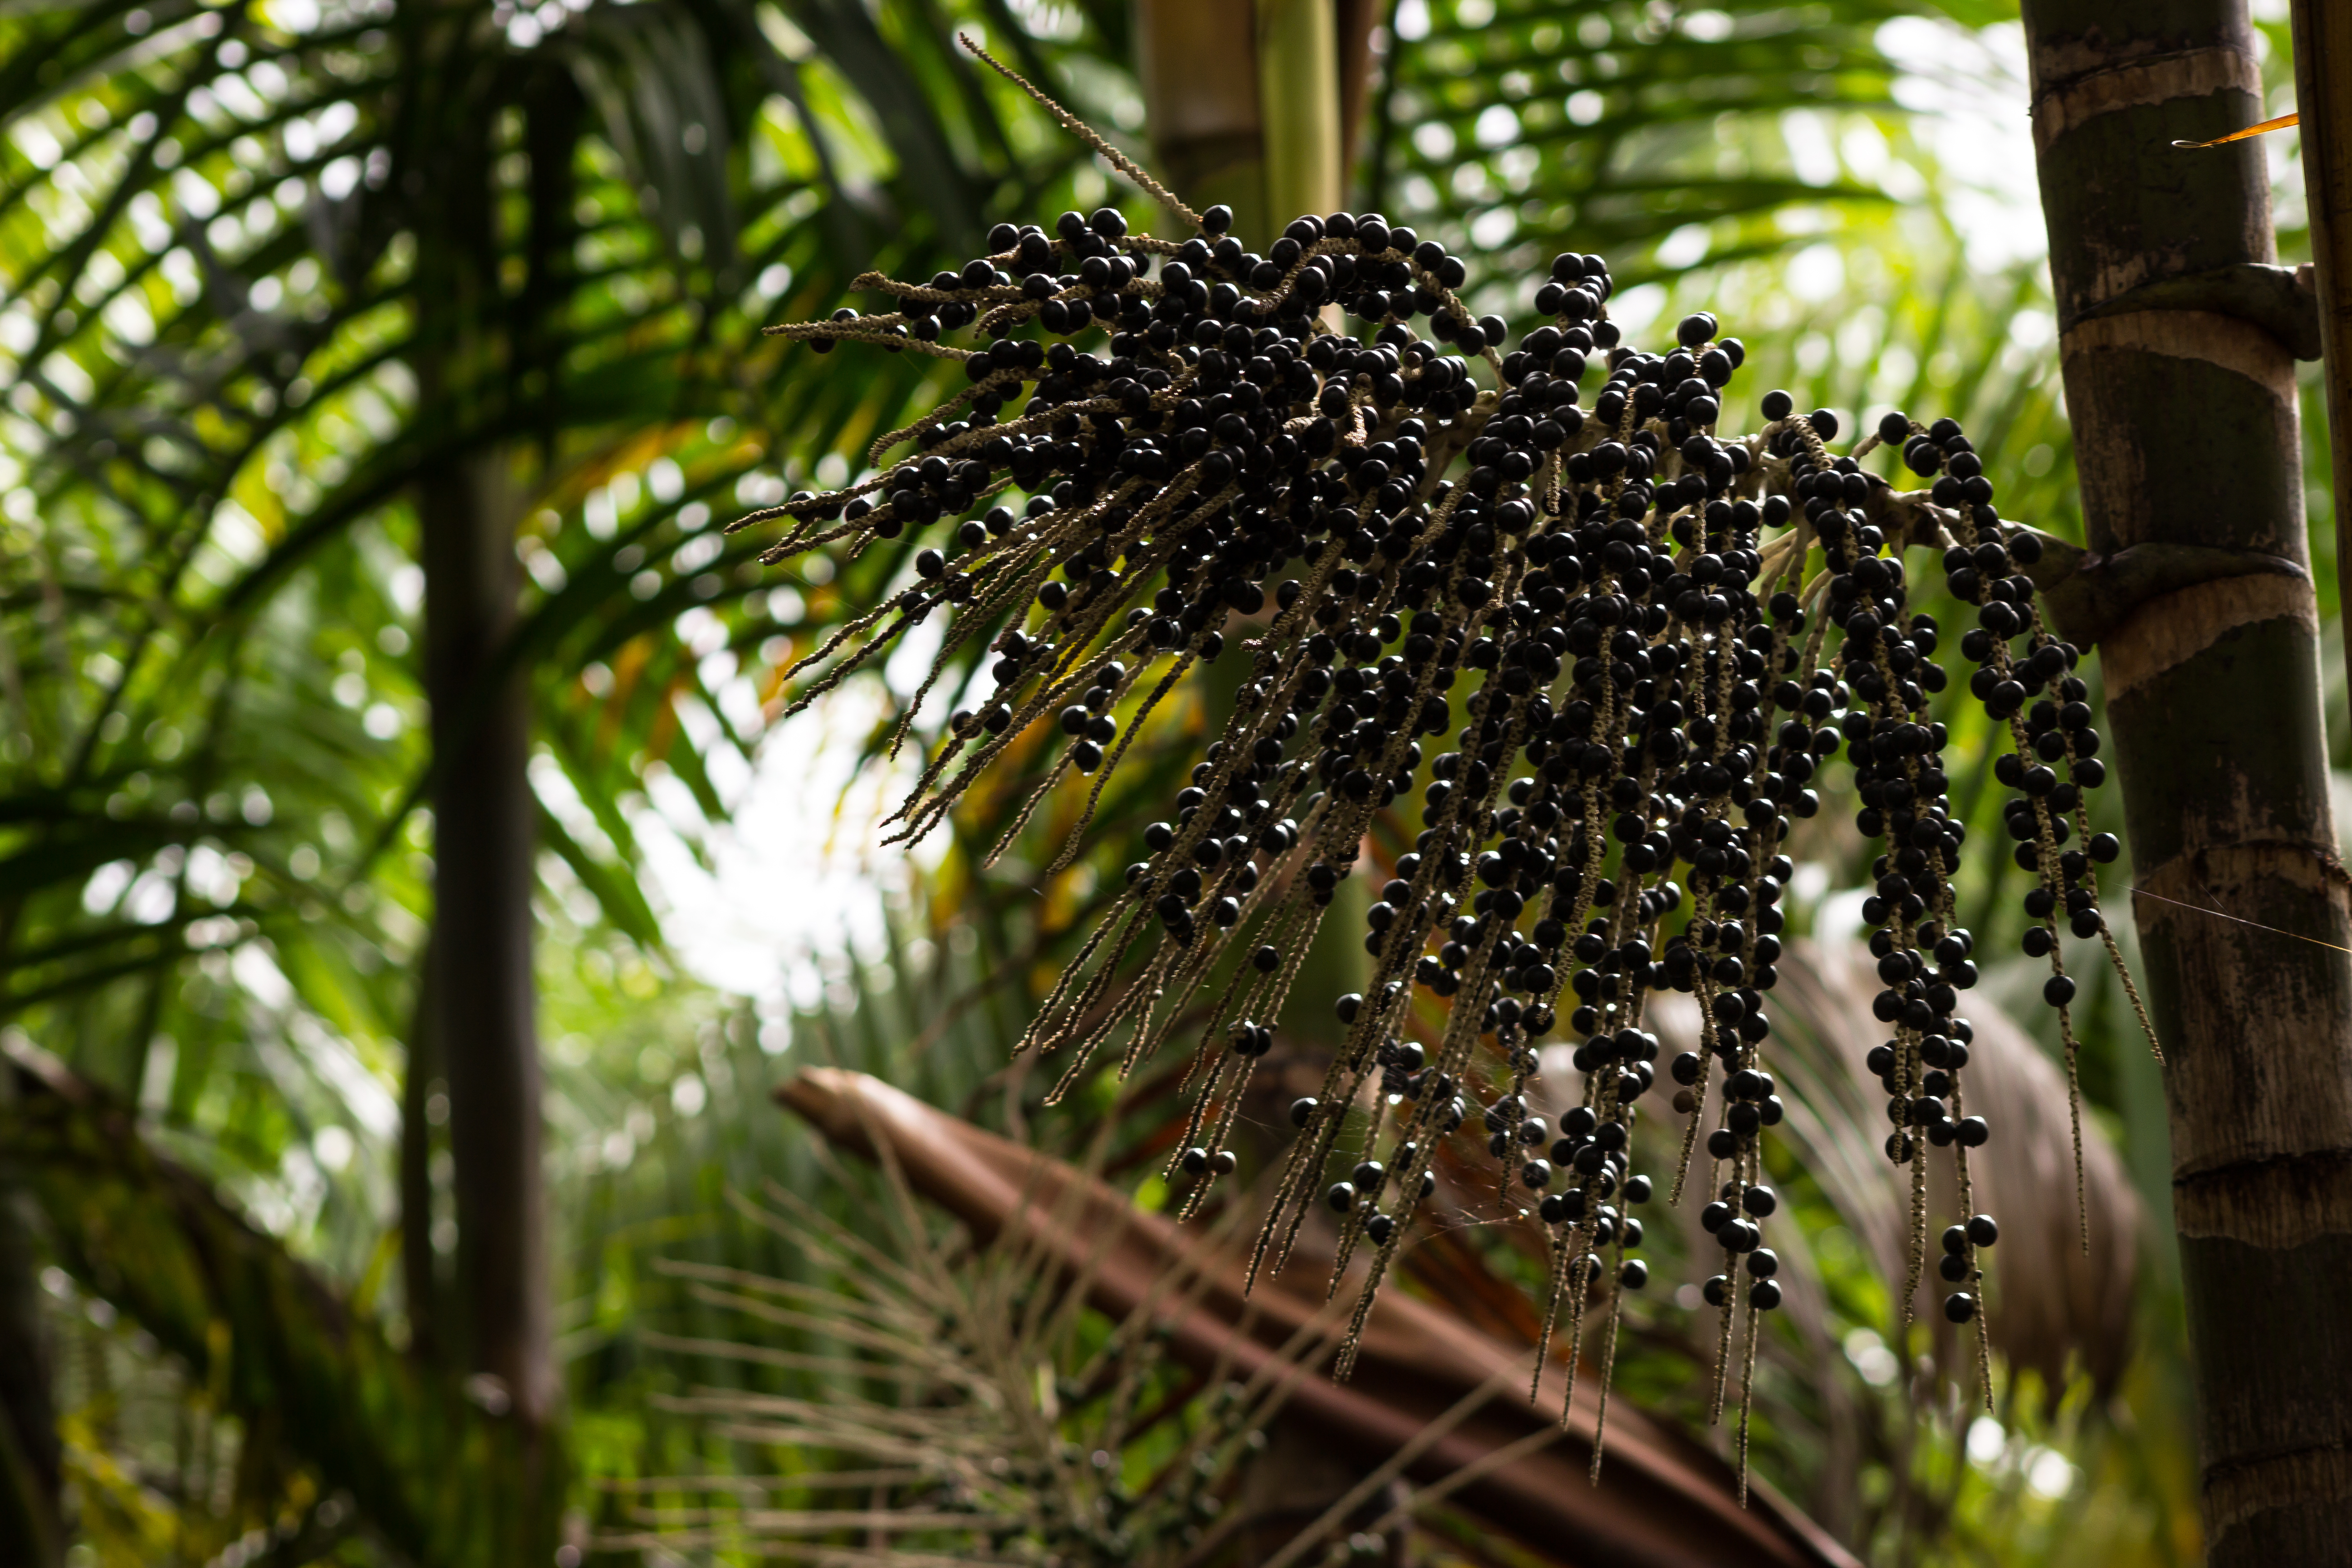 açai cluster and its palm tree, with branches in the background